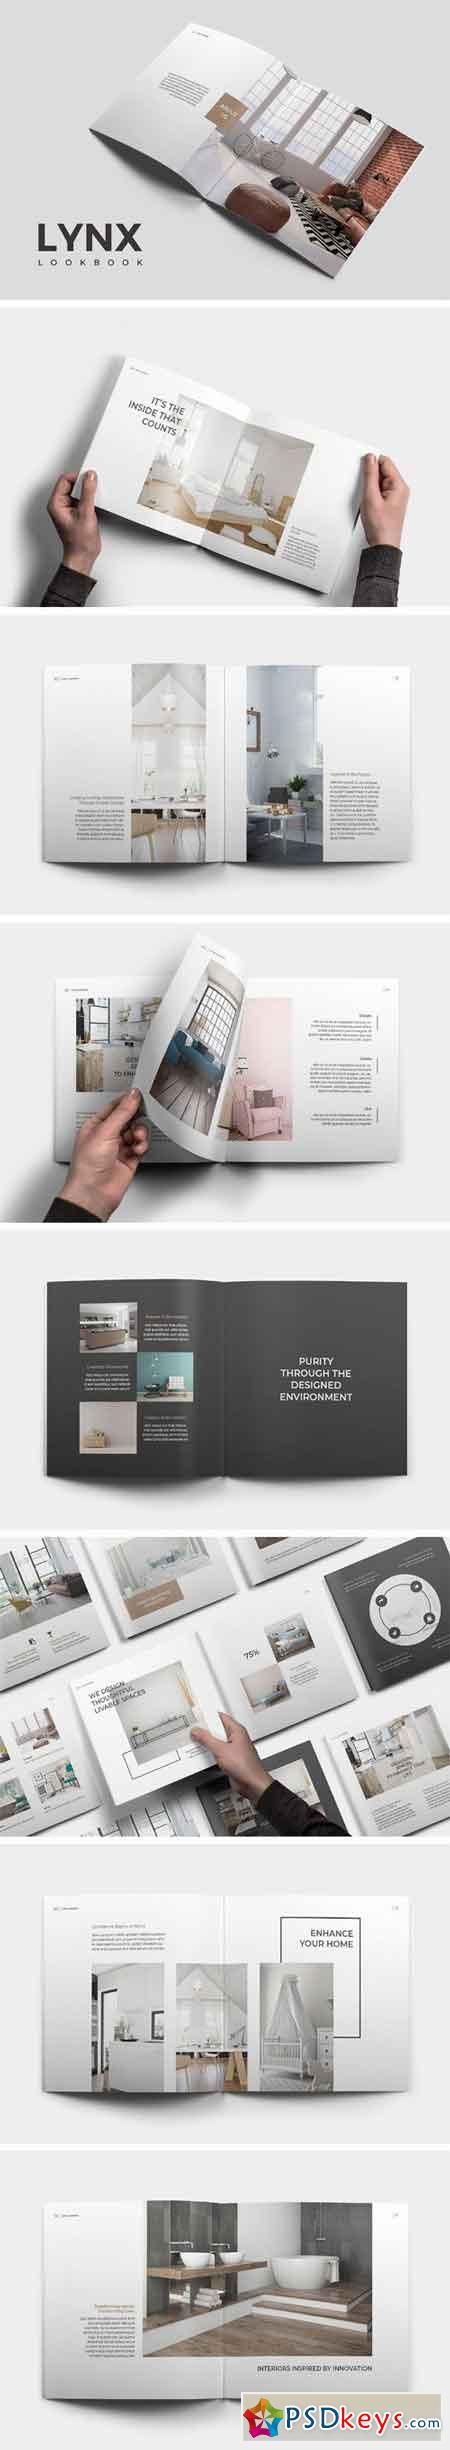 Lynx Lookbook Template 2148462 » Free Download Photoshop Vector ...